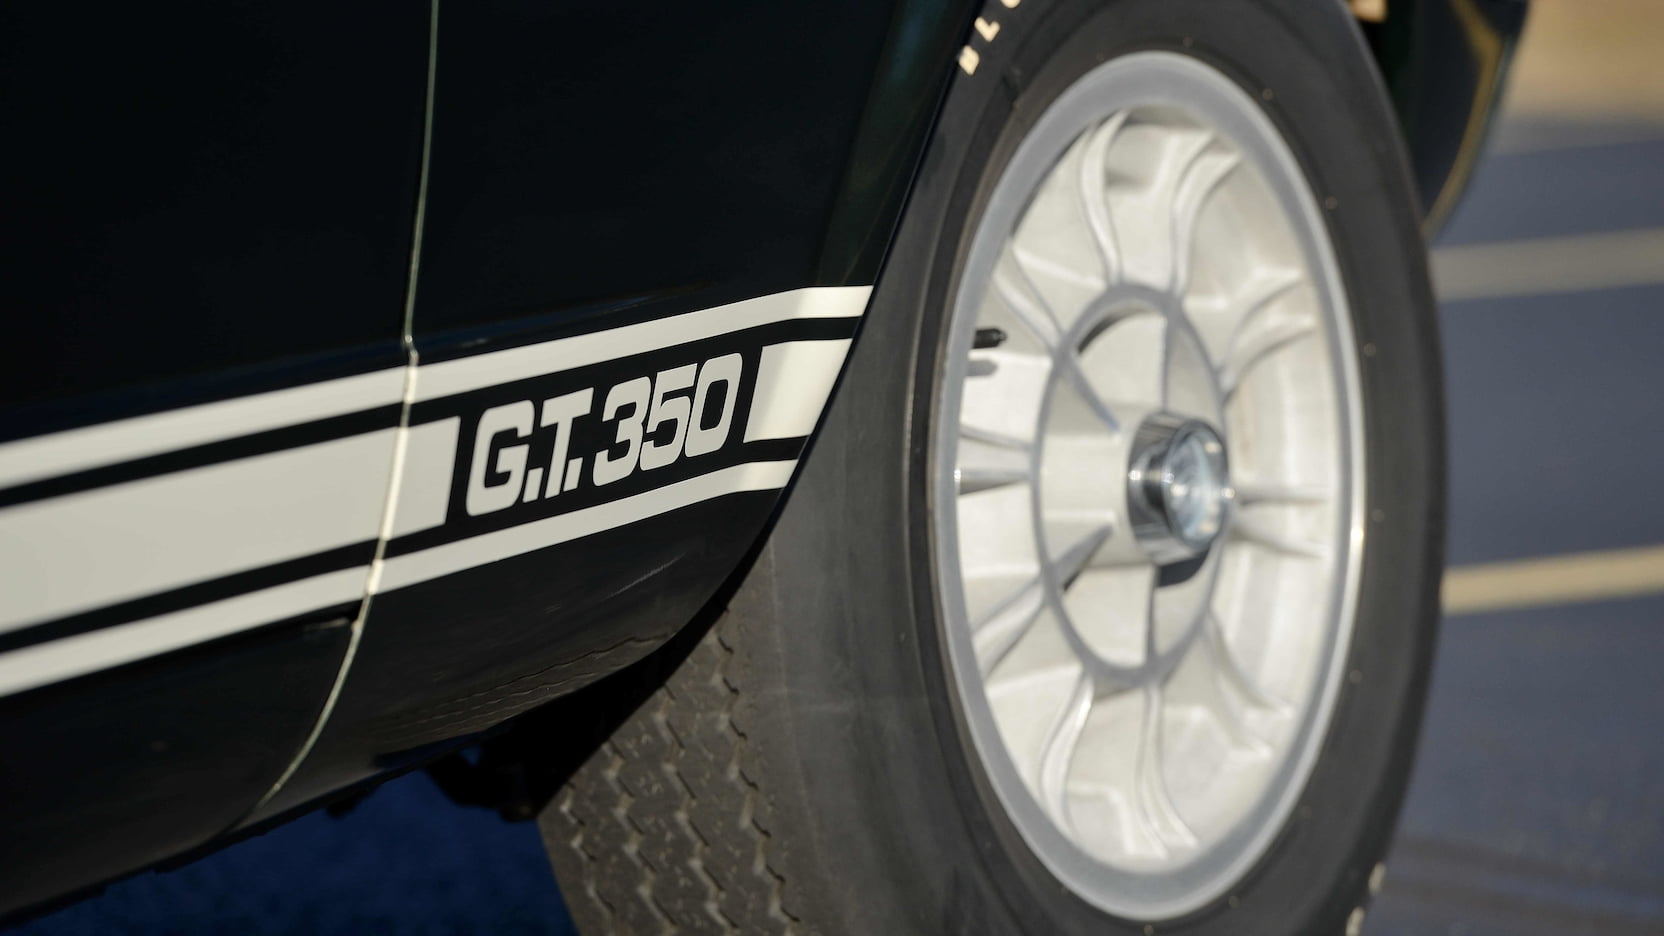 1966 Shelby GT350 wheel detail